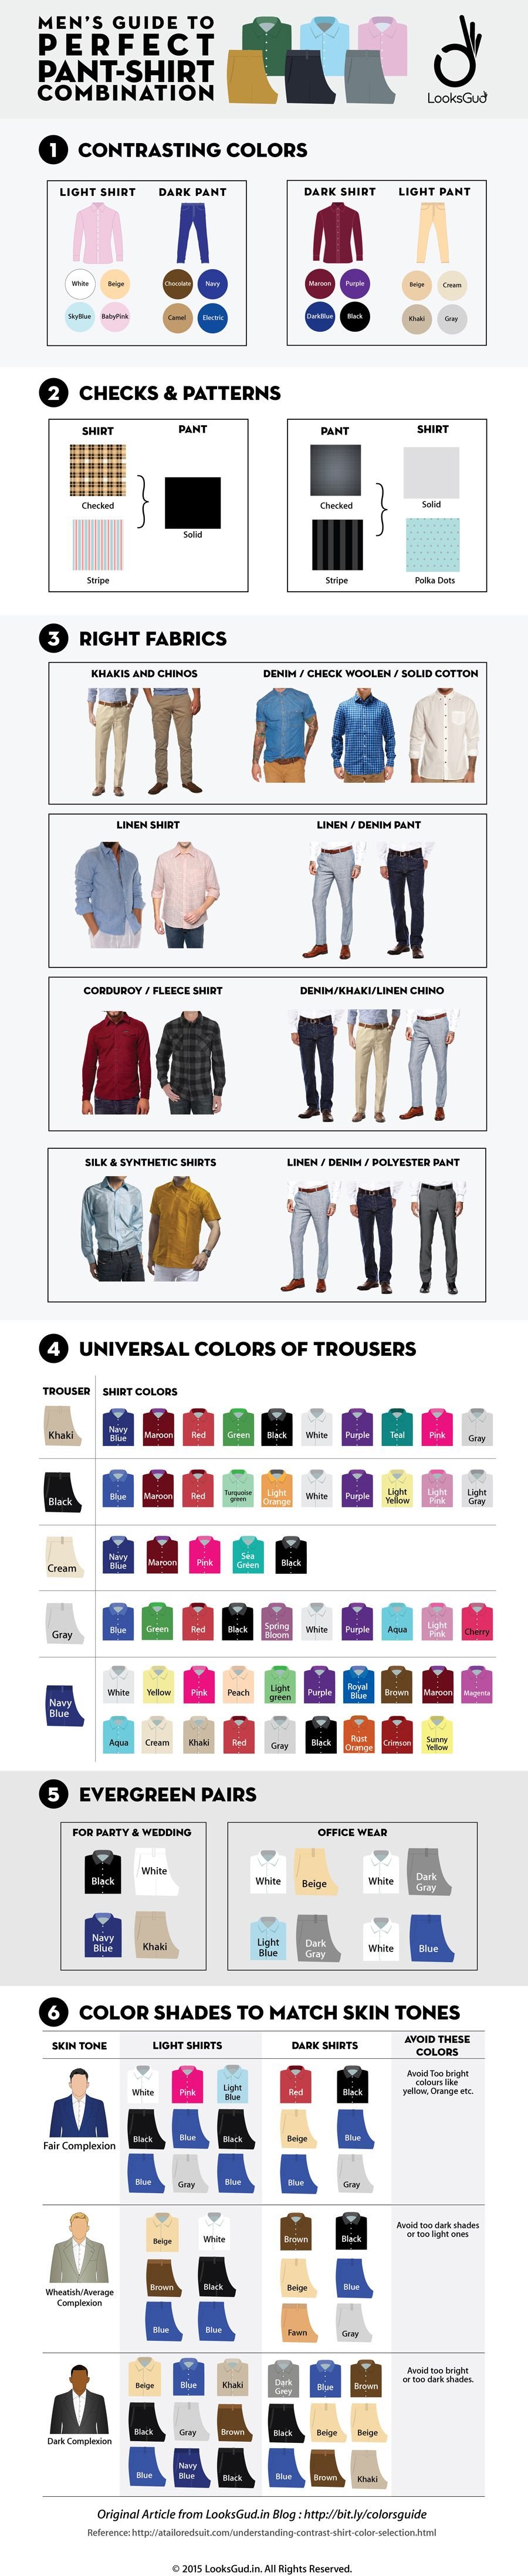 Perfect pant shirt matching guide for menus formal and casual look